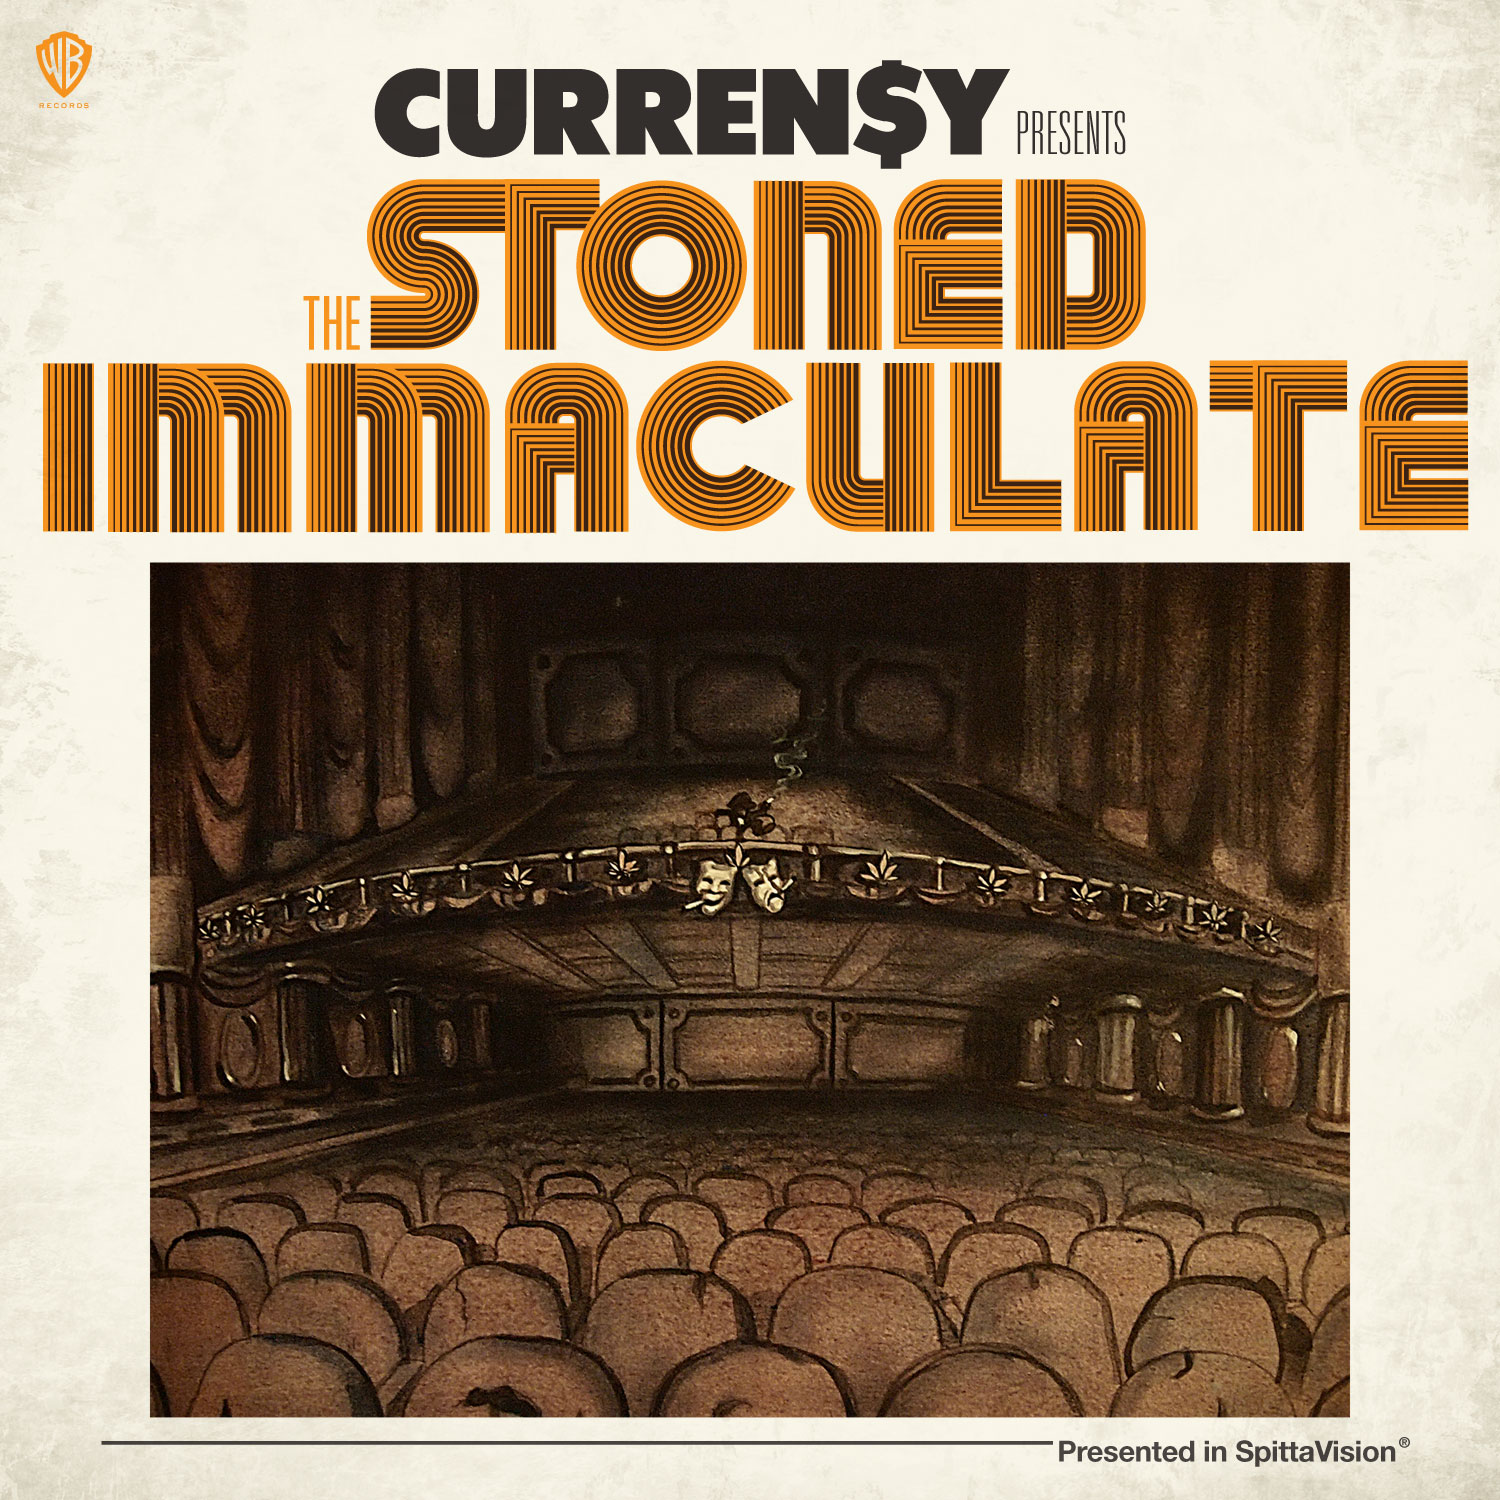 Currensy-Stoned-Immaculate